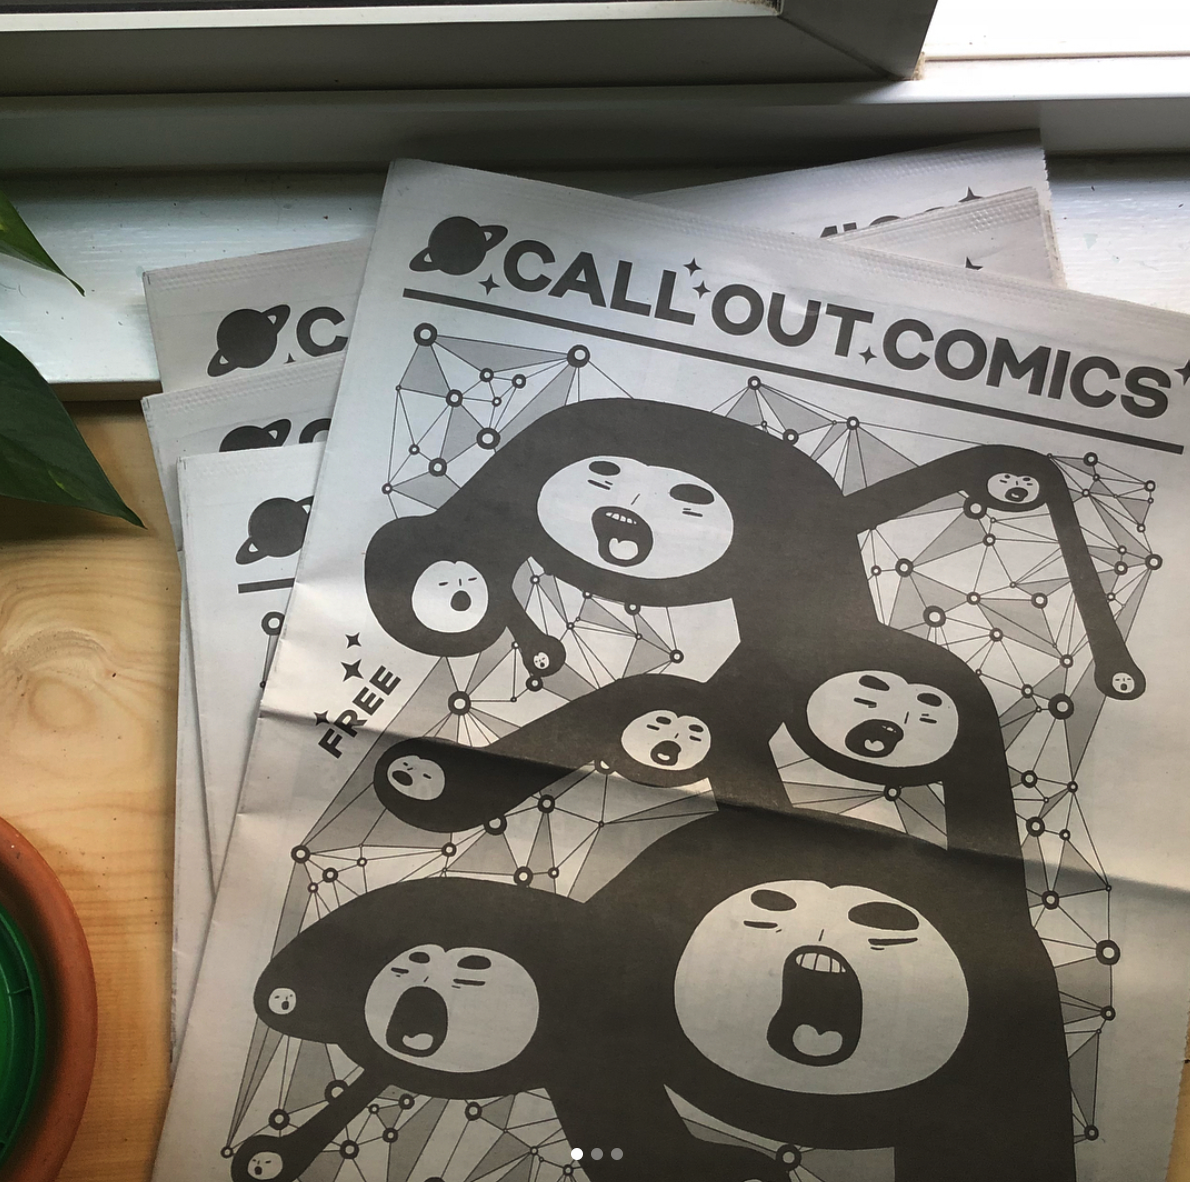 "Hey! Passing along this message from our friend Jonathan in Toronto :)  ""Hello,  I'll be publishing a new issue of Call Out Comics, to debut at Broken Pencil Canzine in Toronto in October. Call Out seeks confrontational comics that challenge a person, idea, pet-peeve, etc. and/or attempt to hold someone/something accountable for their words/actions. Think fierce. Older not new work is ok.  Project info:  http://rotsztain.com/projects/call_out.html   Specs:  - Black and white  - Full page: 10"" x 13 ""  - Minimum 300dpi TIFFs, JPEGs or PDFs  - One page per artist  Artwork due September 1,  Selected artists will receive $10/comic + 10 complimentary copies.  Please let me know if you're interested in contributing! Thank you for your consideration,  Jonathan"""